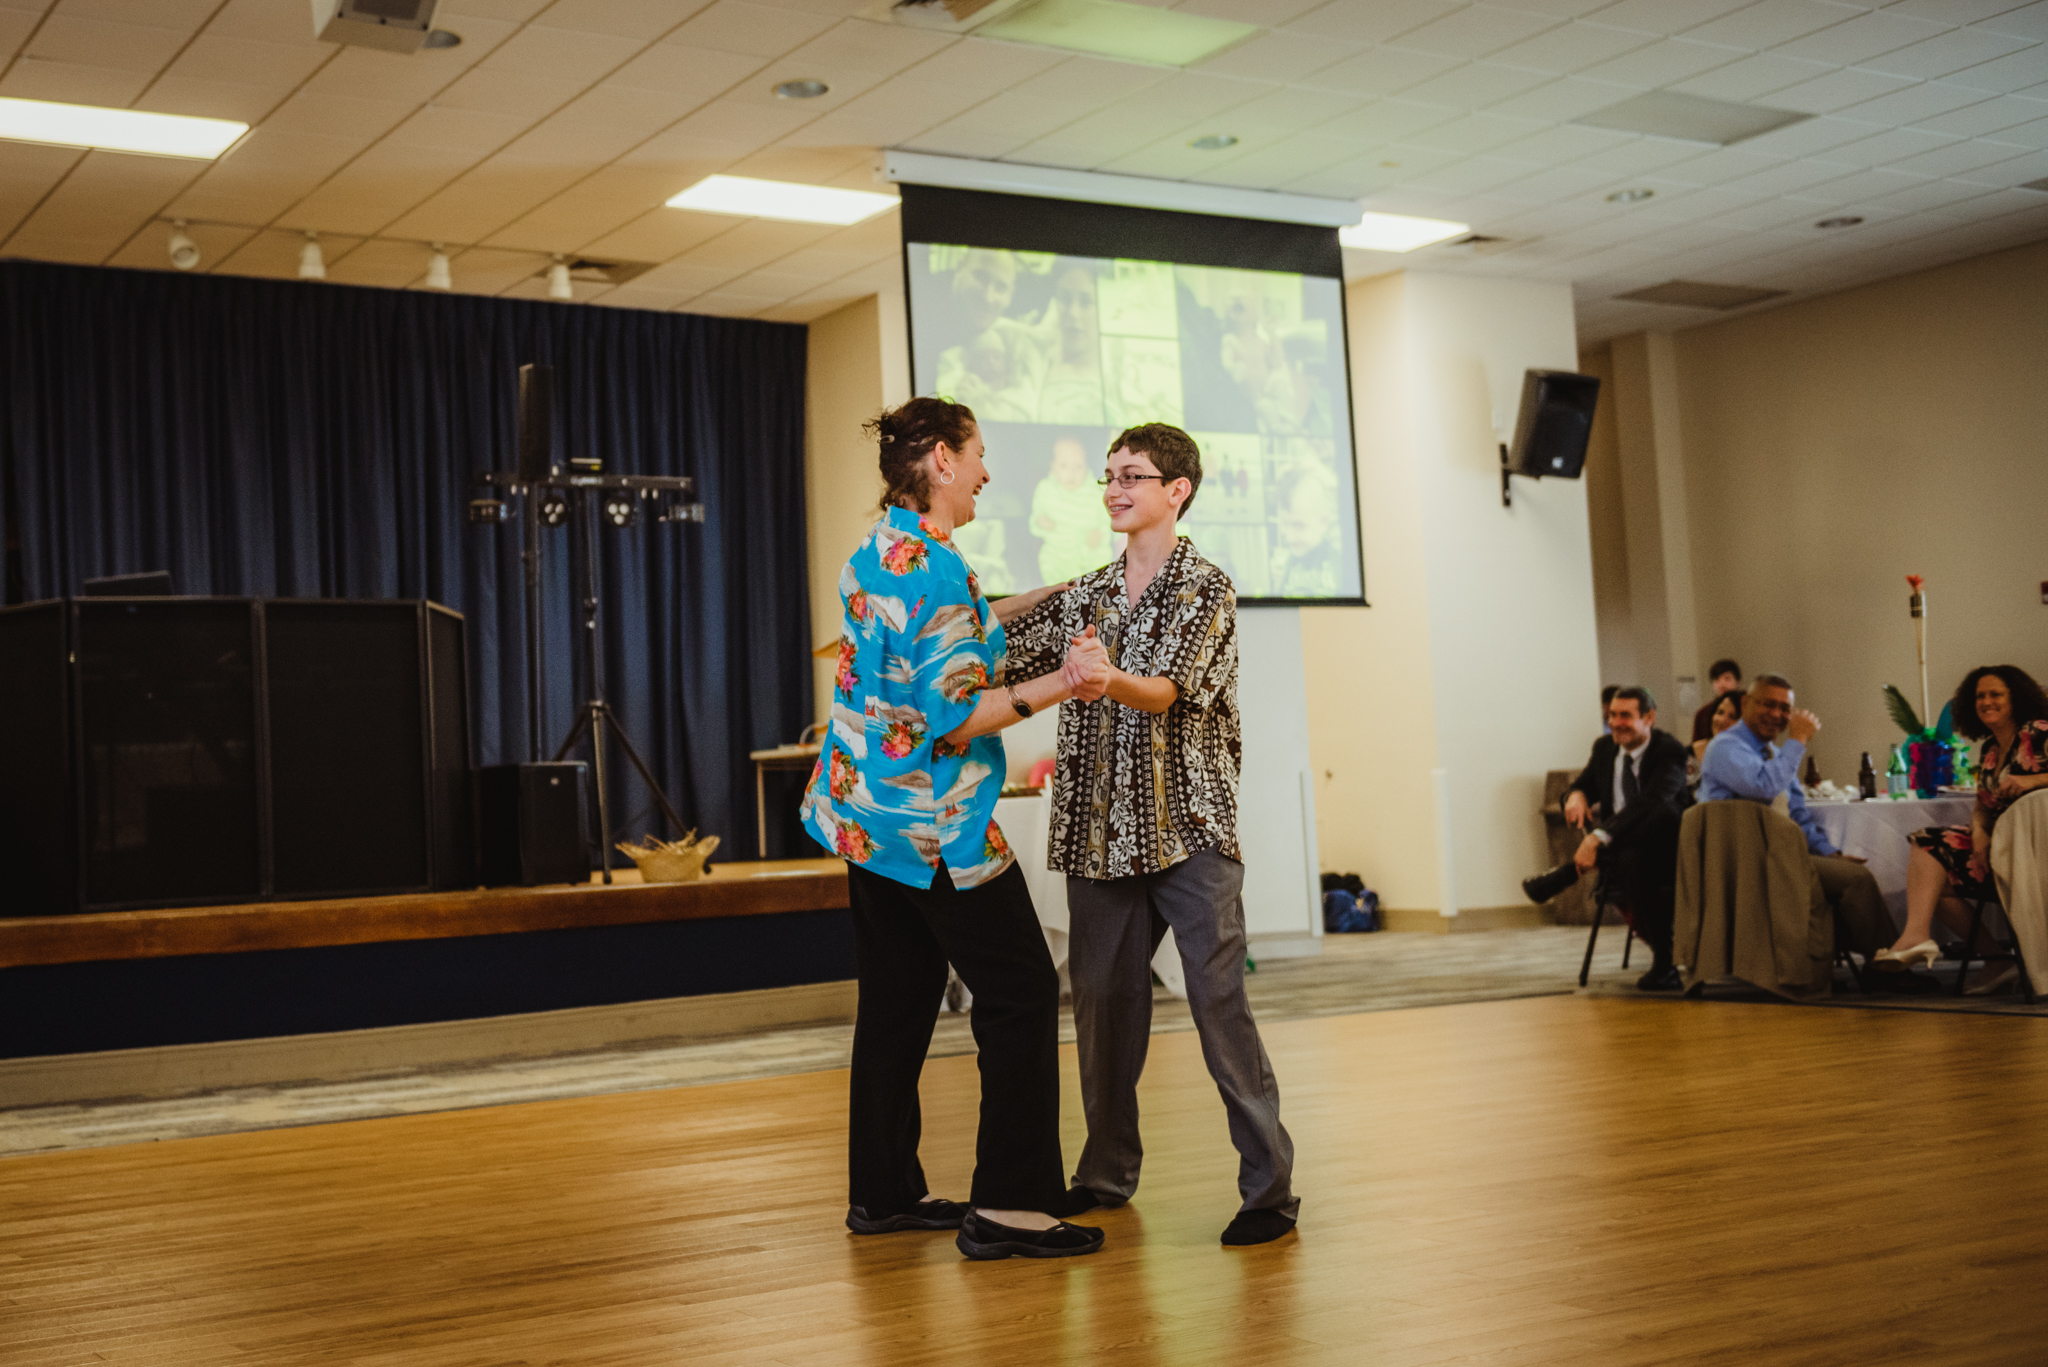 mother-and-son-do-a-choreographed-dance-at-the-mitzvah-celebration.jpg